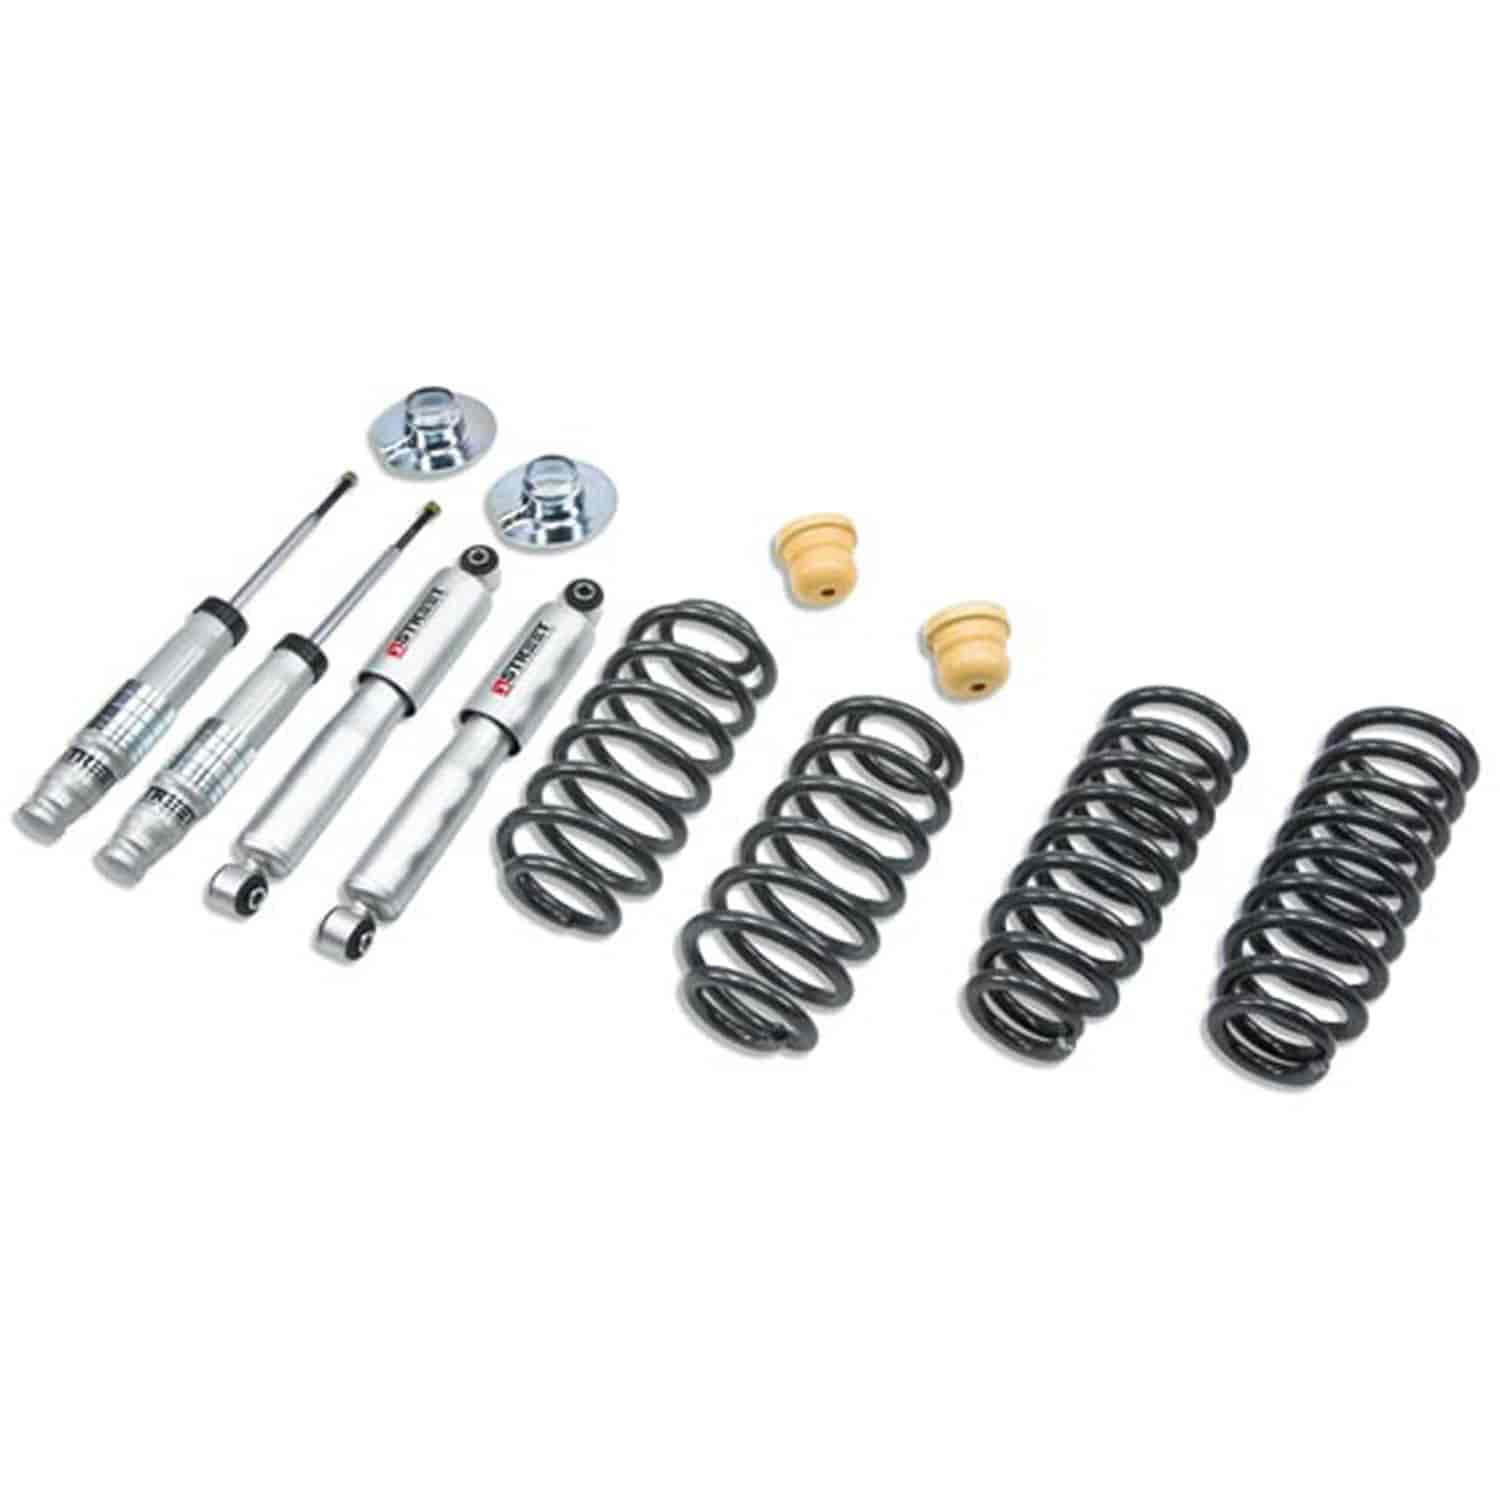 Belltech 795sp Complete Lowering Kit For Chevy